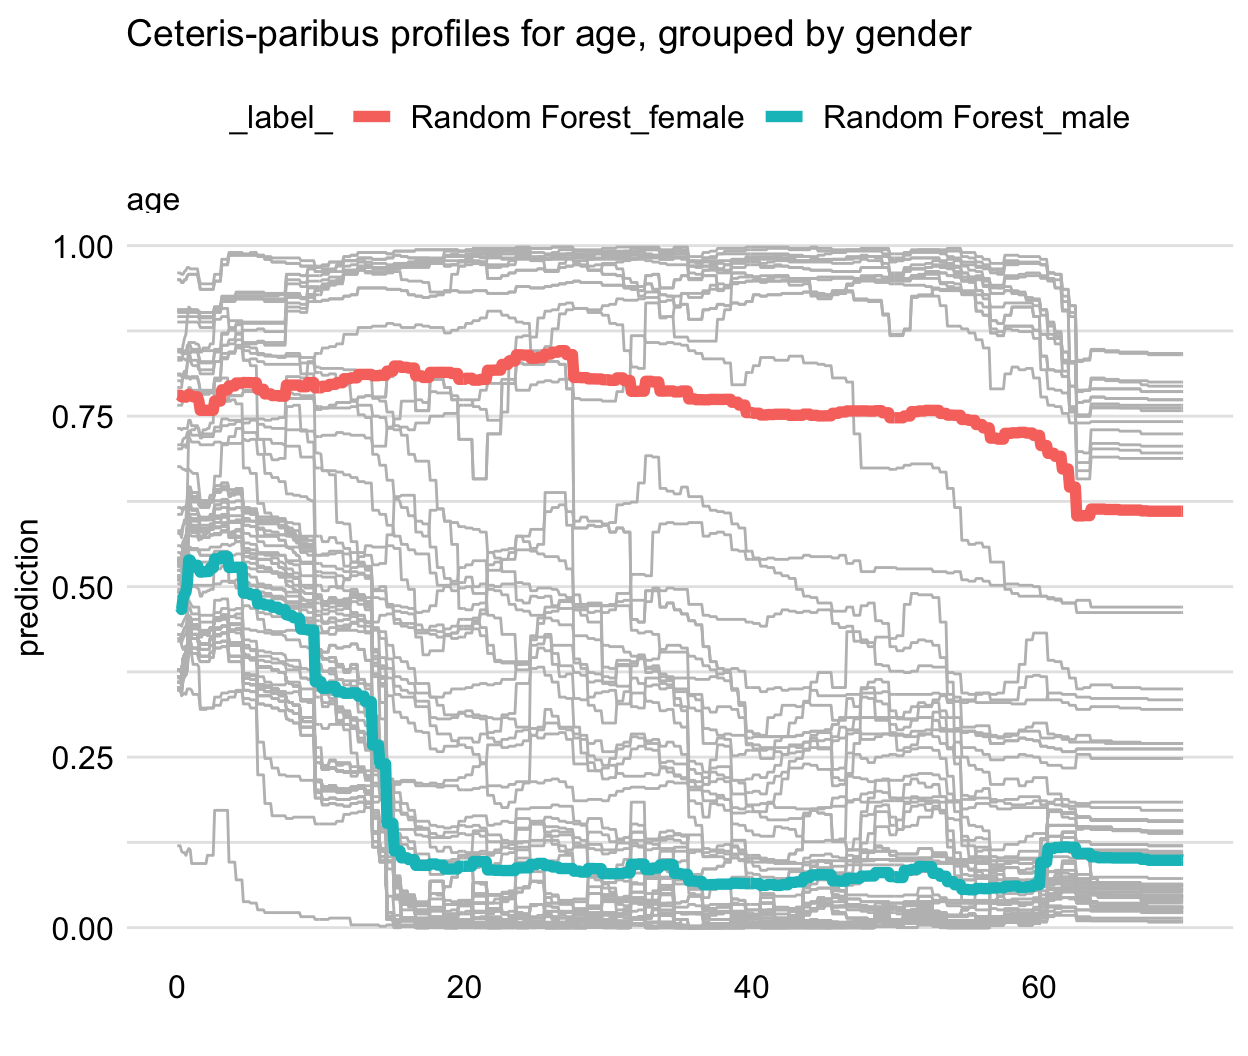 Partial-dependence profiles for two genders for the random forest model for 100 randomly selected observations from the Titanic dataset. Grey lines indicate ceteris-paribus profiles for age.